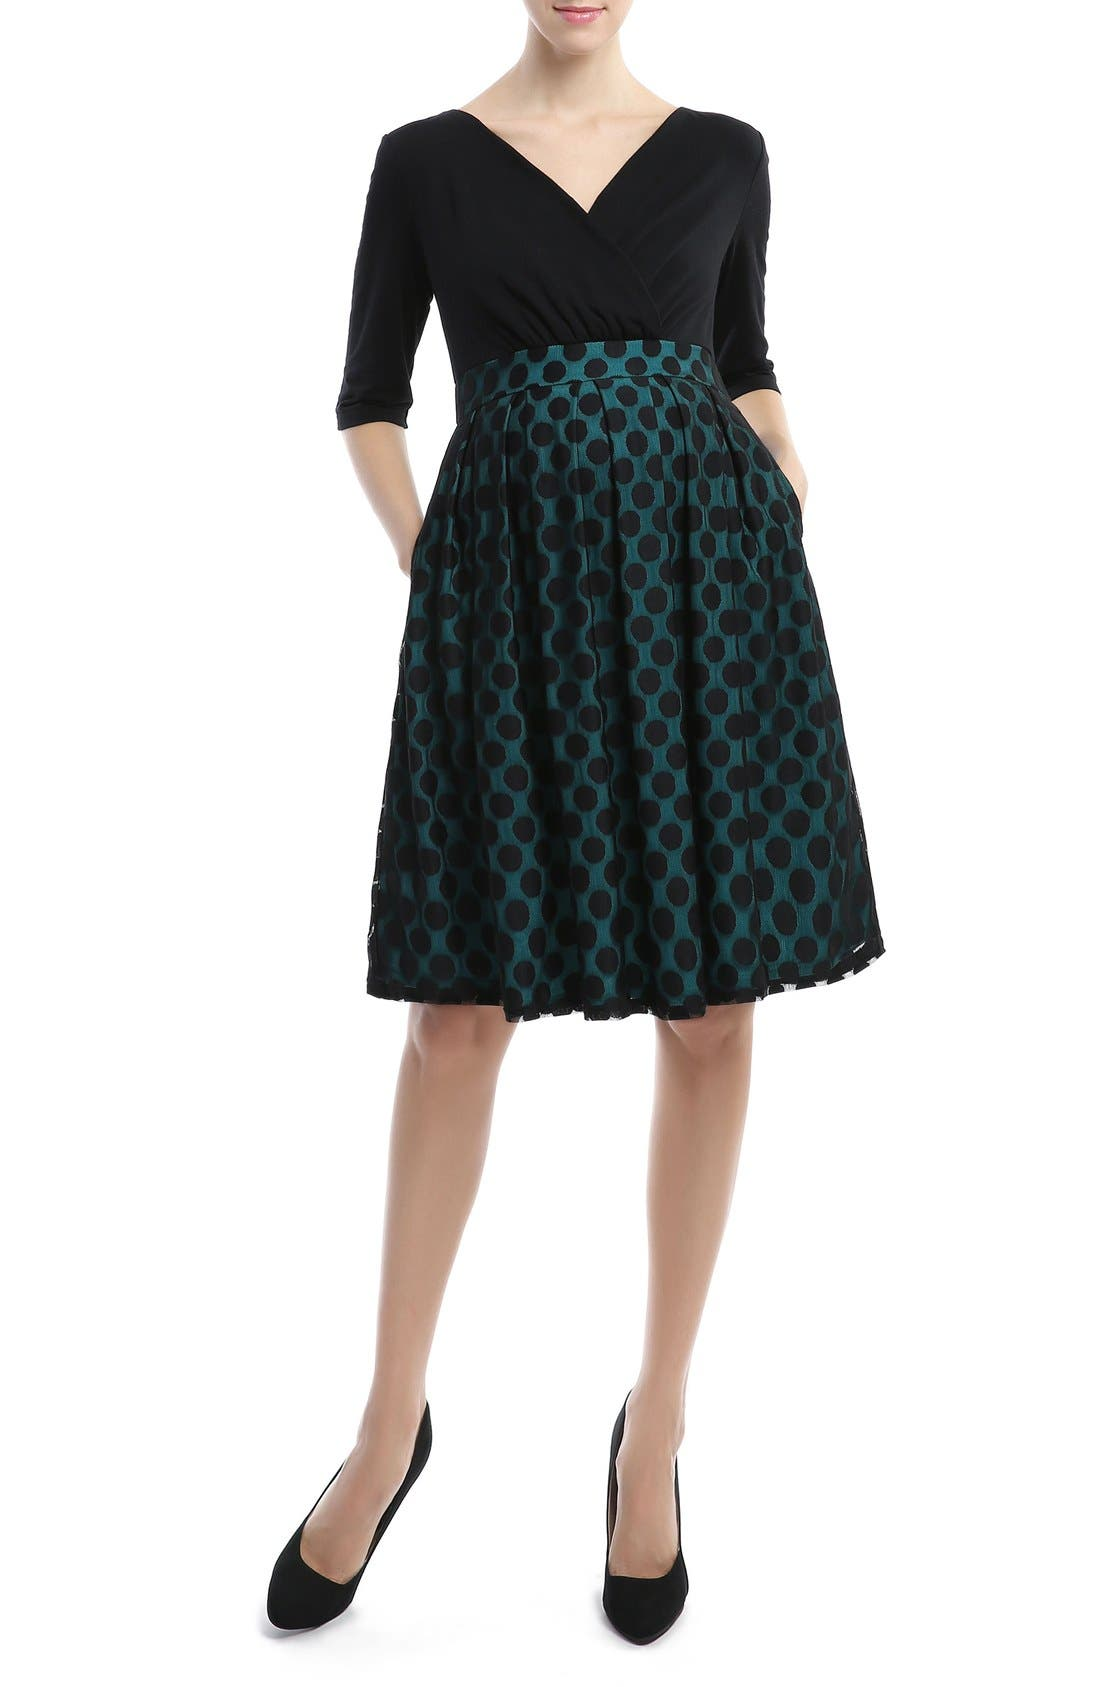 Vintage Style Maternity Clothes Womens Kimi And Kai Liliana Polka Dot Lace Maternity Dress Size Small - Bluegreen $138.00 AT vintagedancer.com